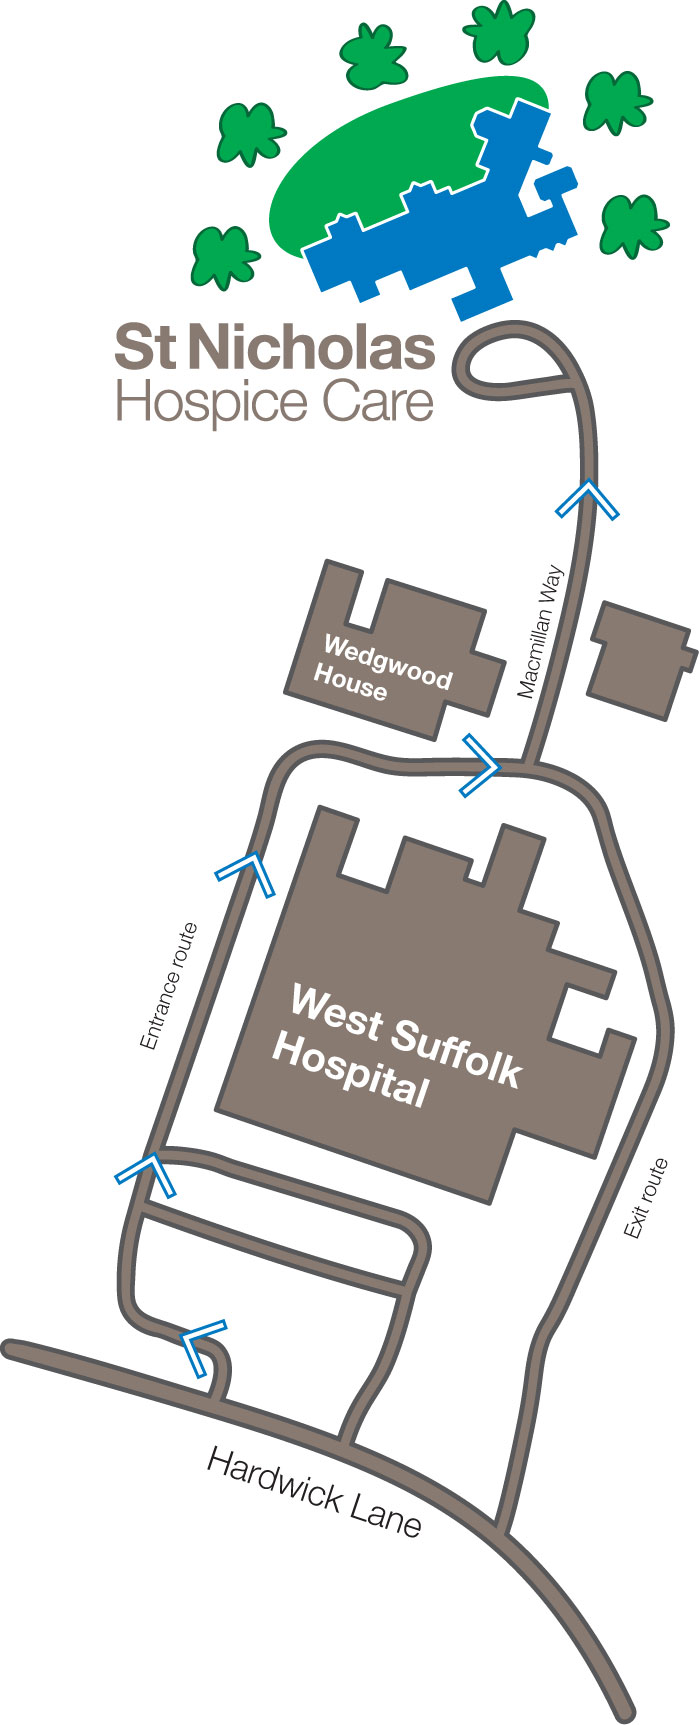 Site-map-st-nicholas-hospice-care